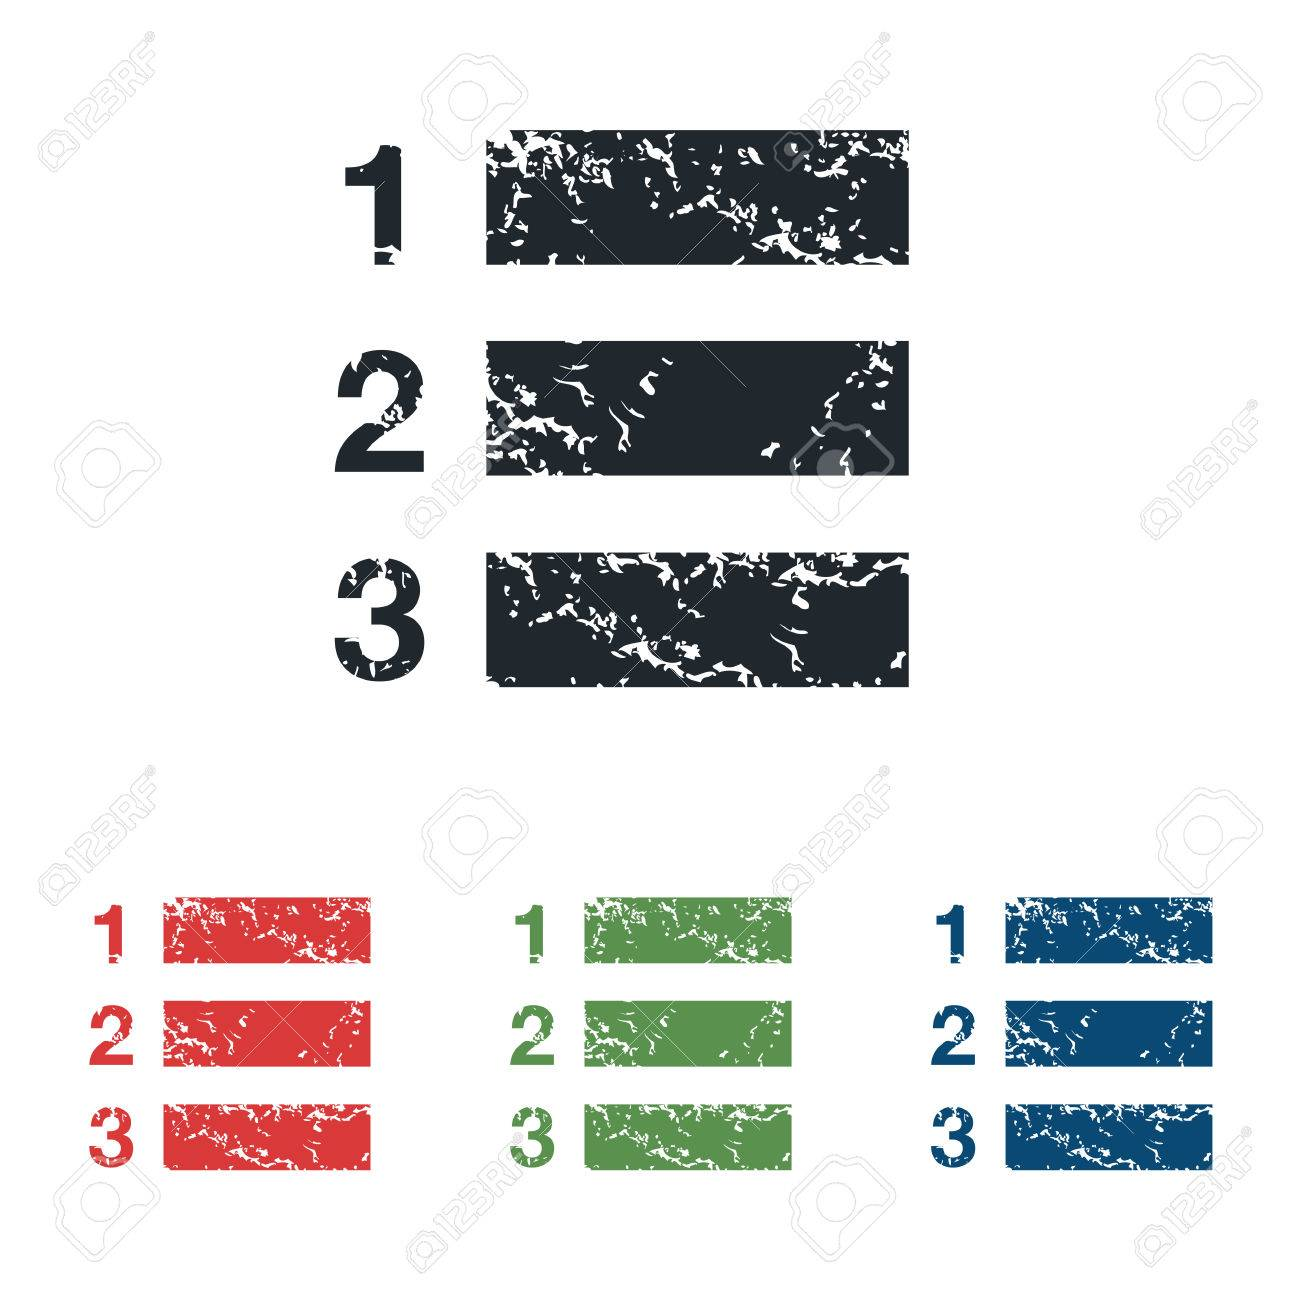 numbered list grunge icon set royalty free cliparts, vectors, and